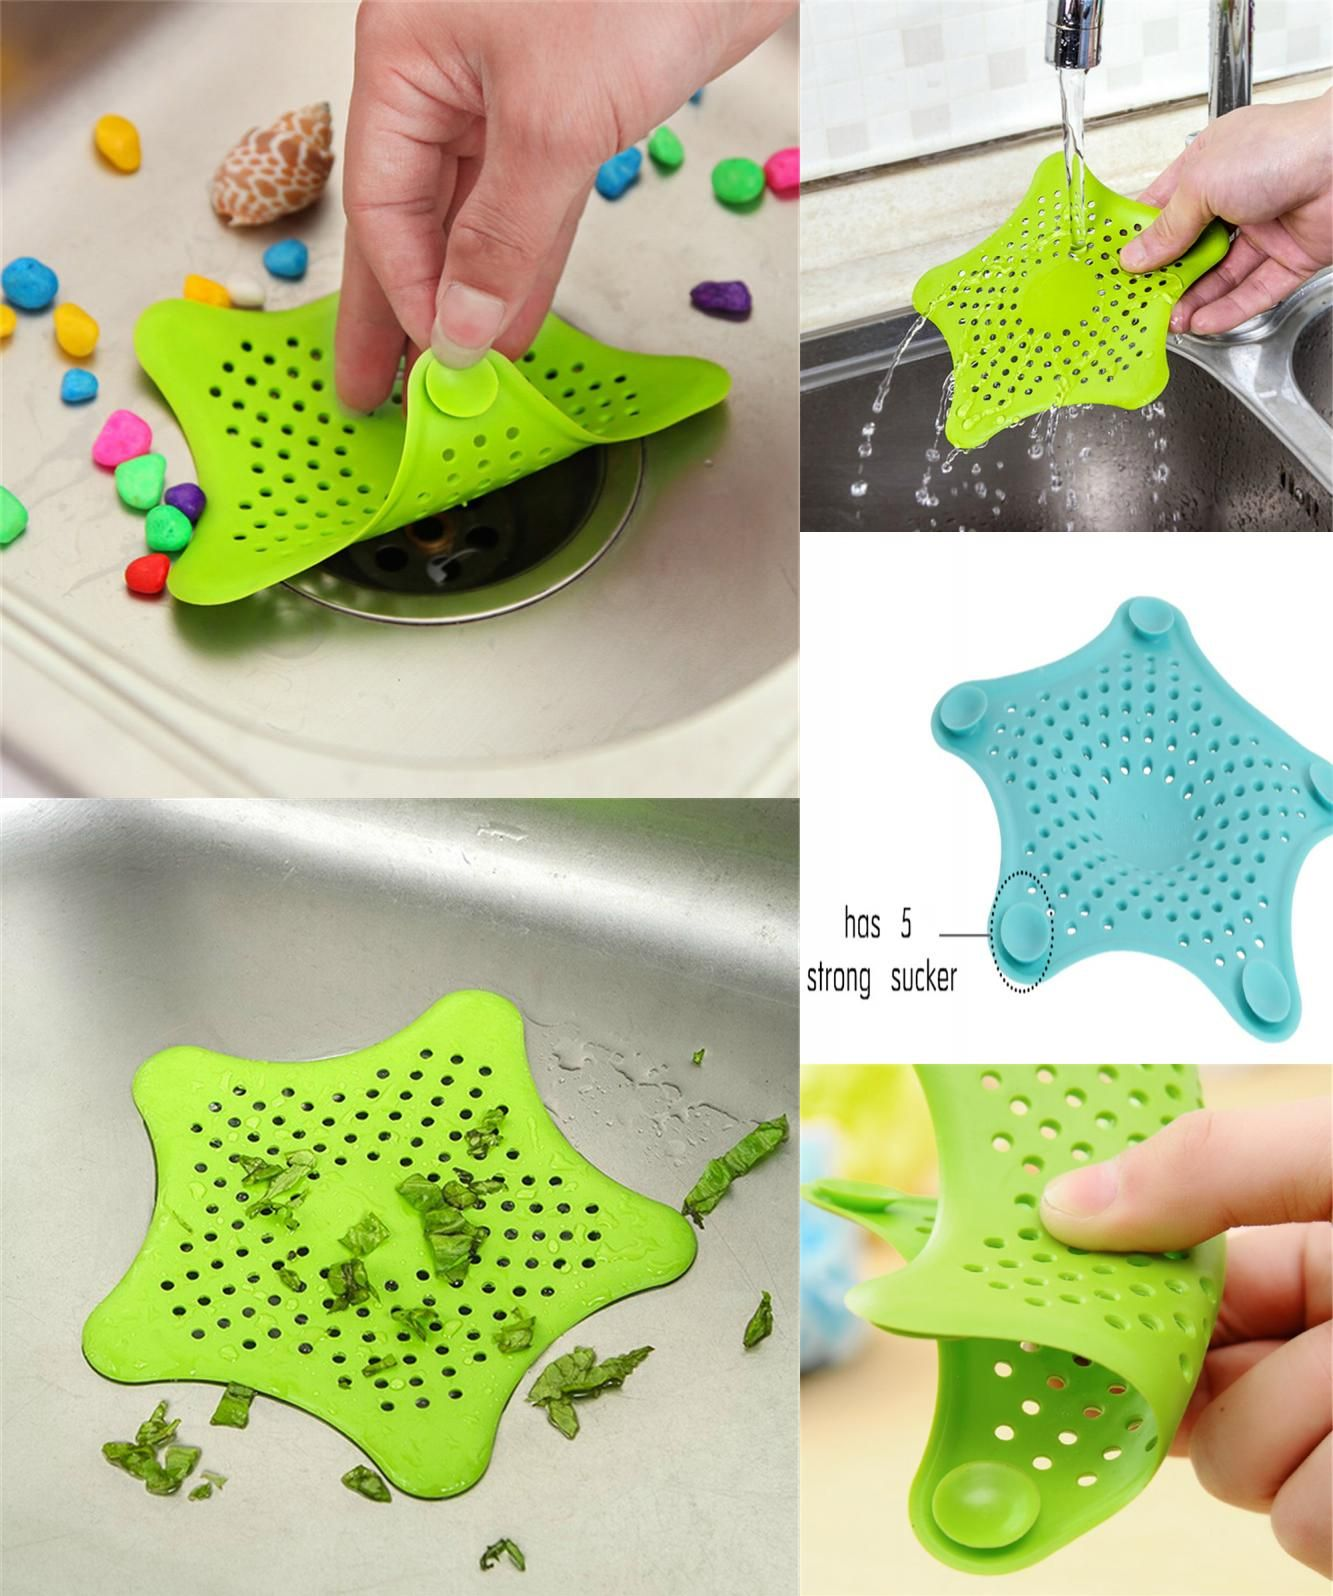 Visit to Buy] Creative Sewer Outfall Strainer Bathroom Silicone ...